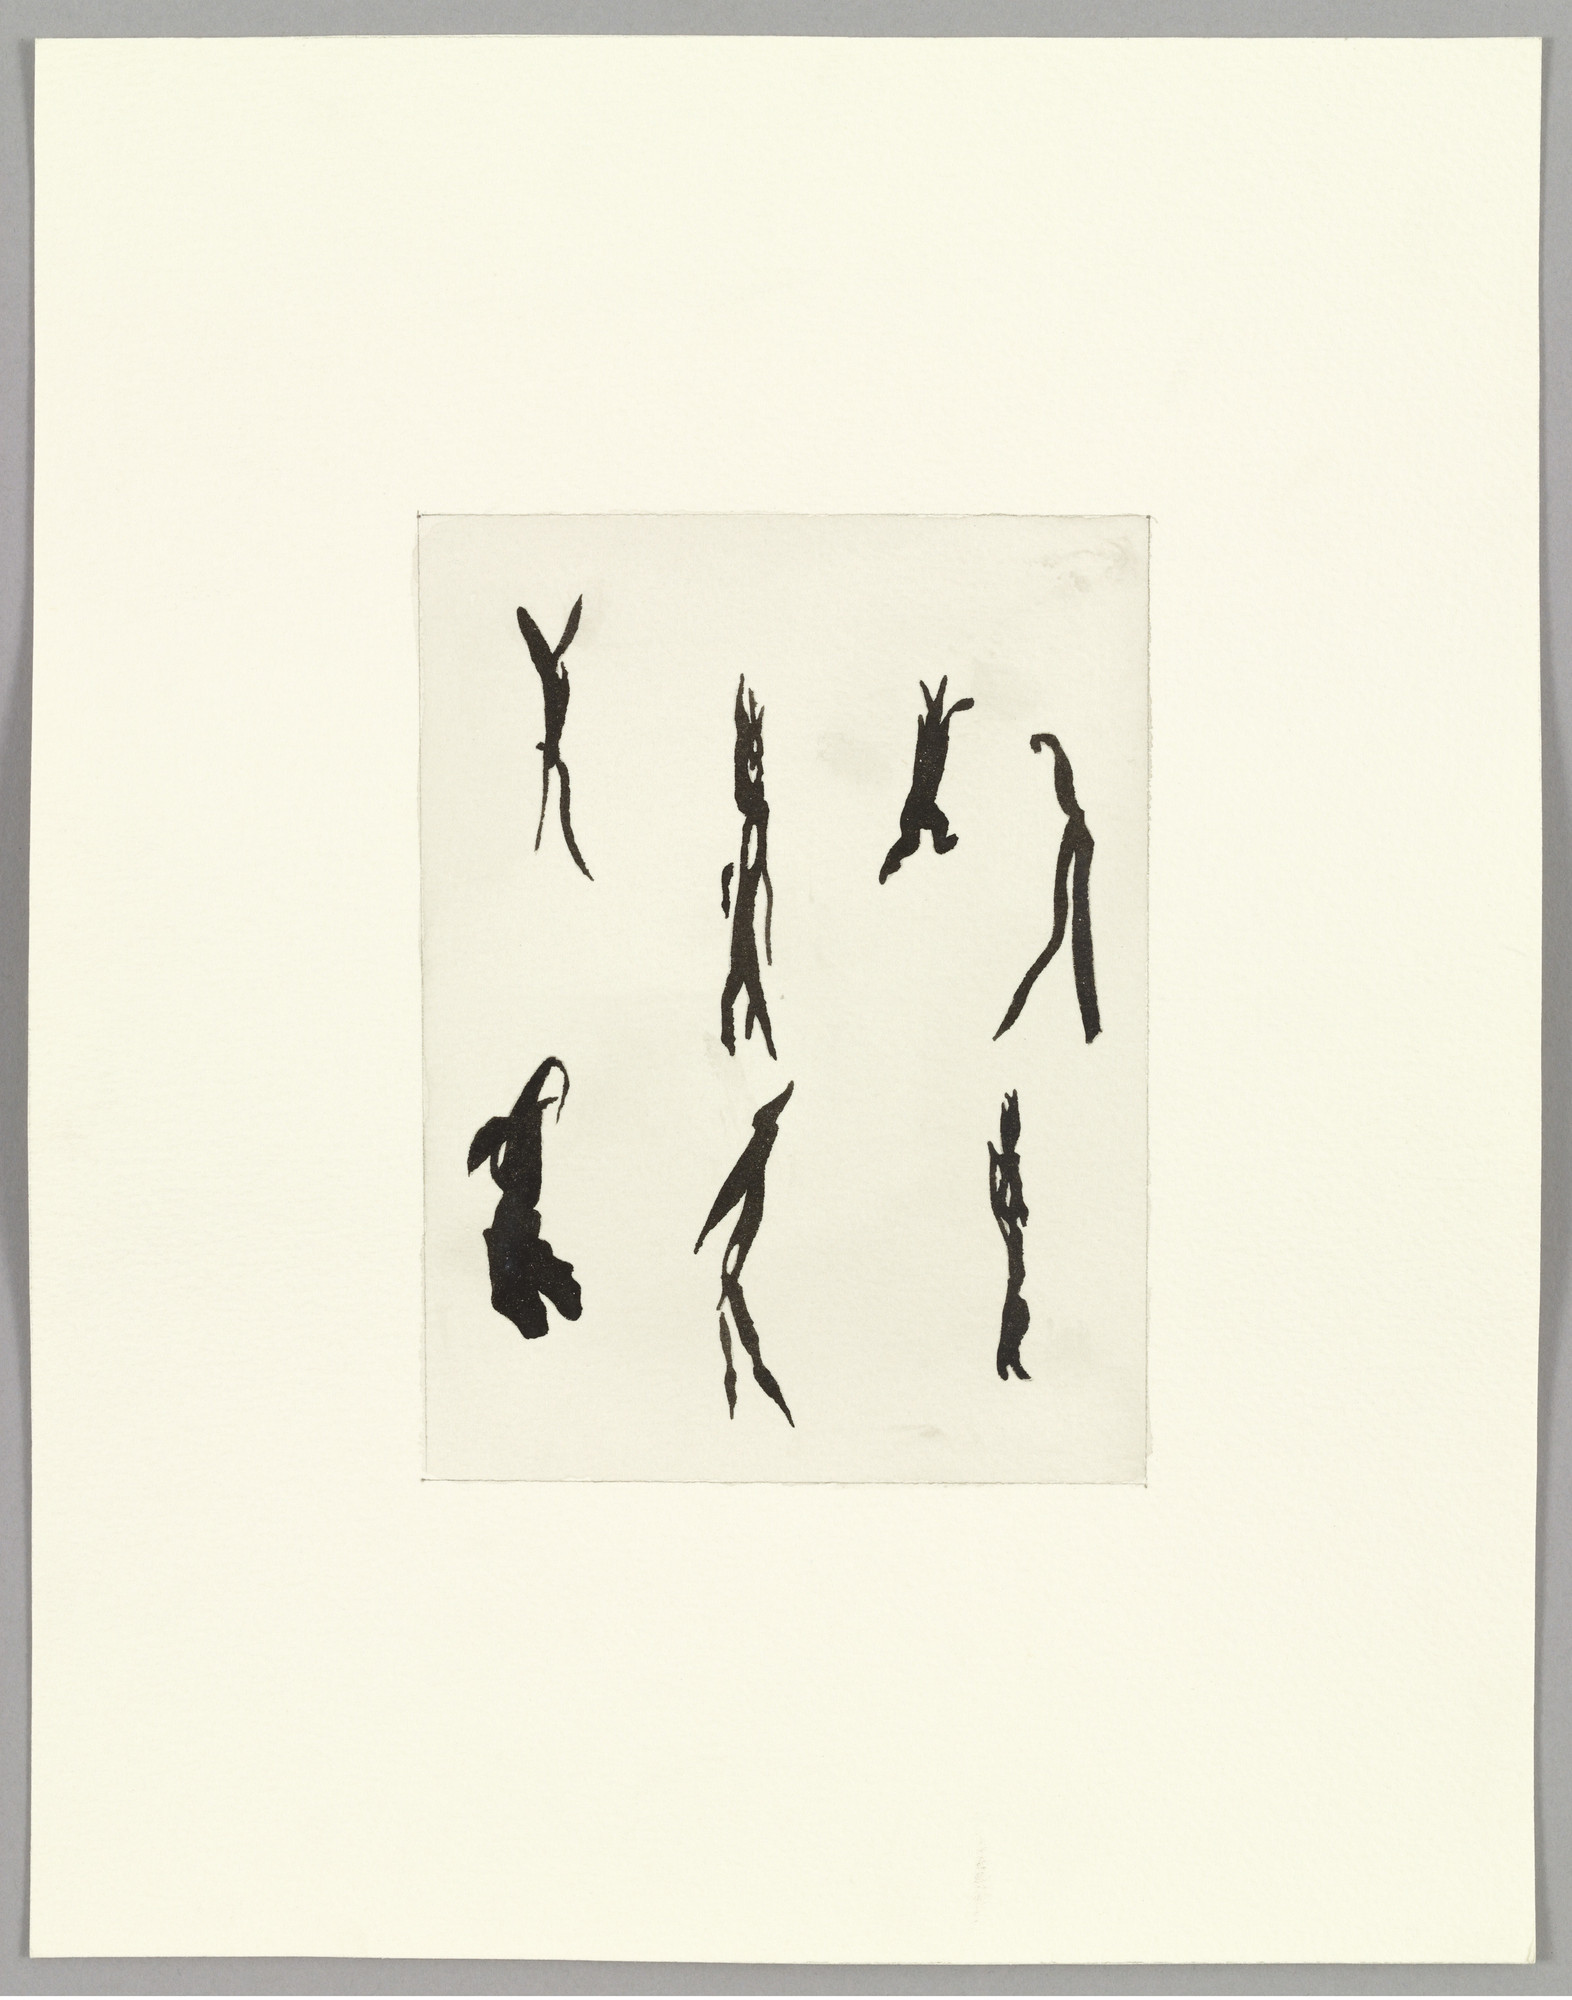 Sherrie Levine. After Henri Michaux: 1-10. 1985